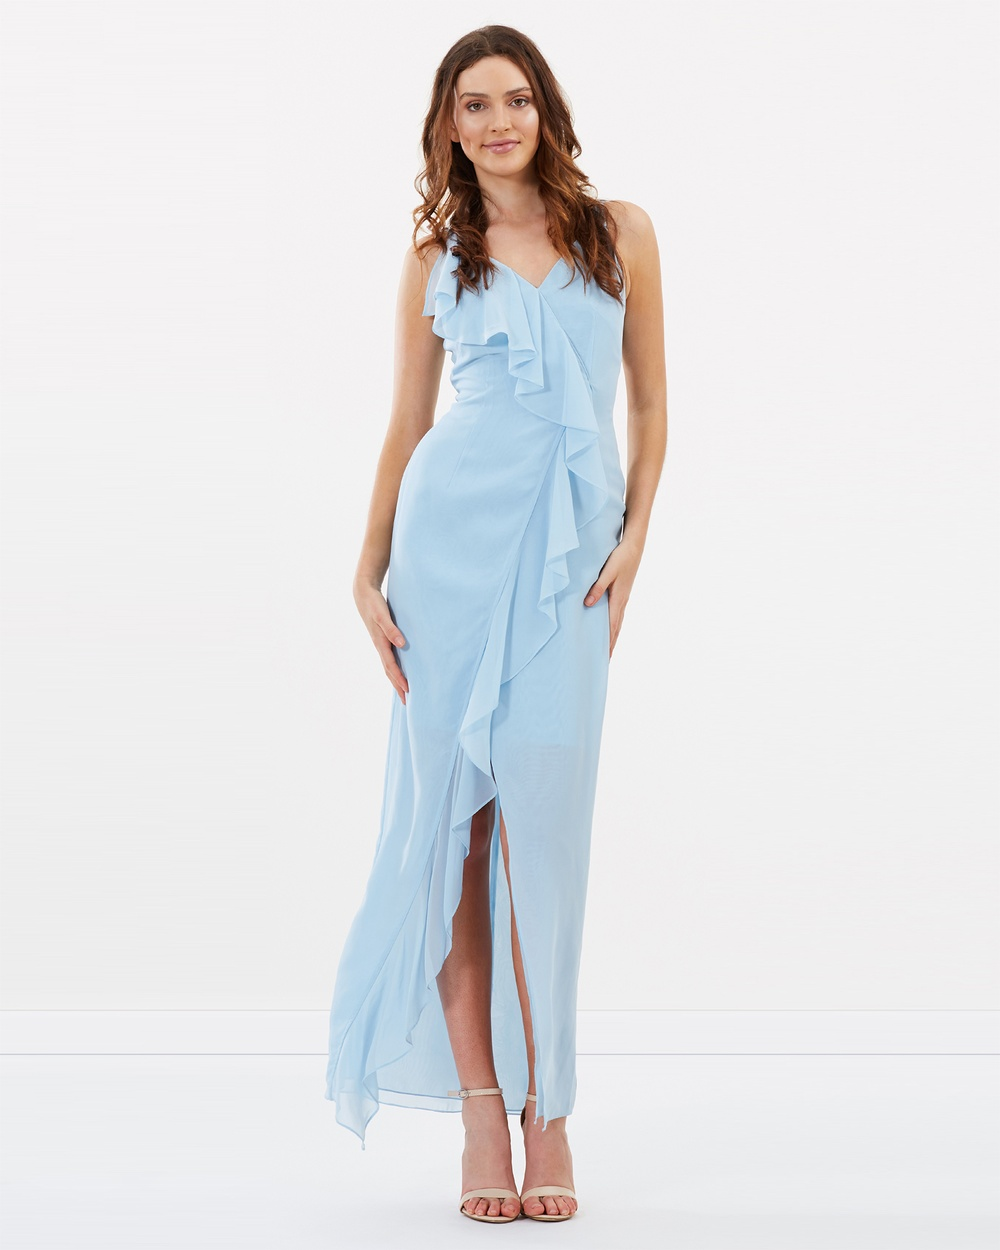 Alabaster The Label Powder Blue Willow Dress